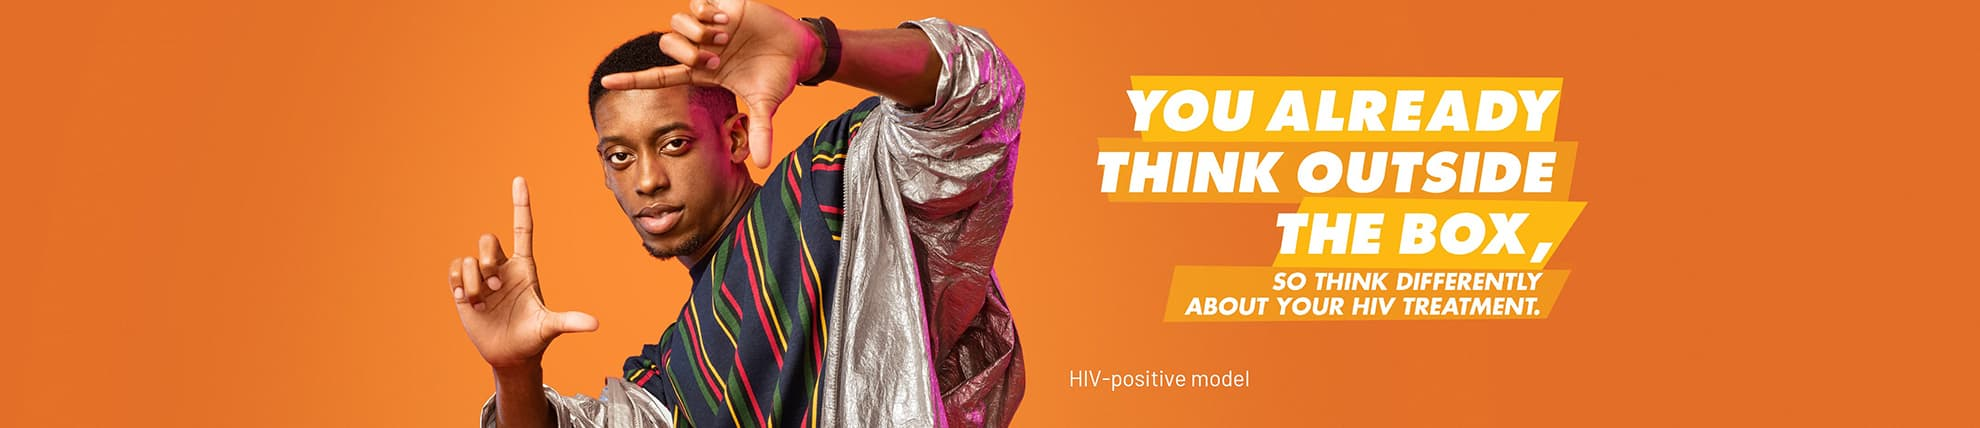 Think Differently About Your HIV-1 Treatment